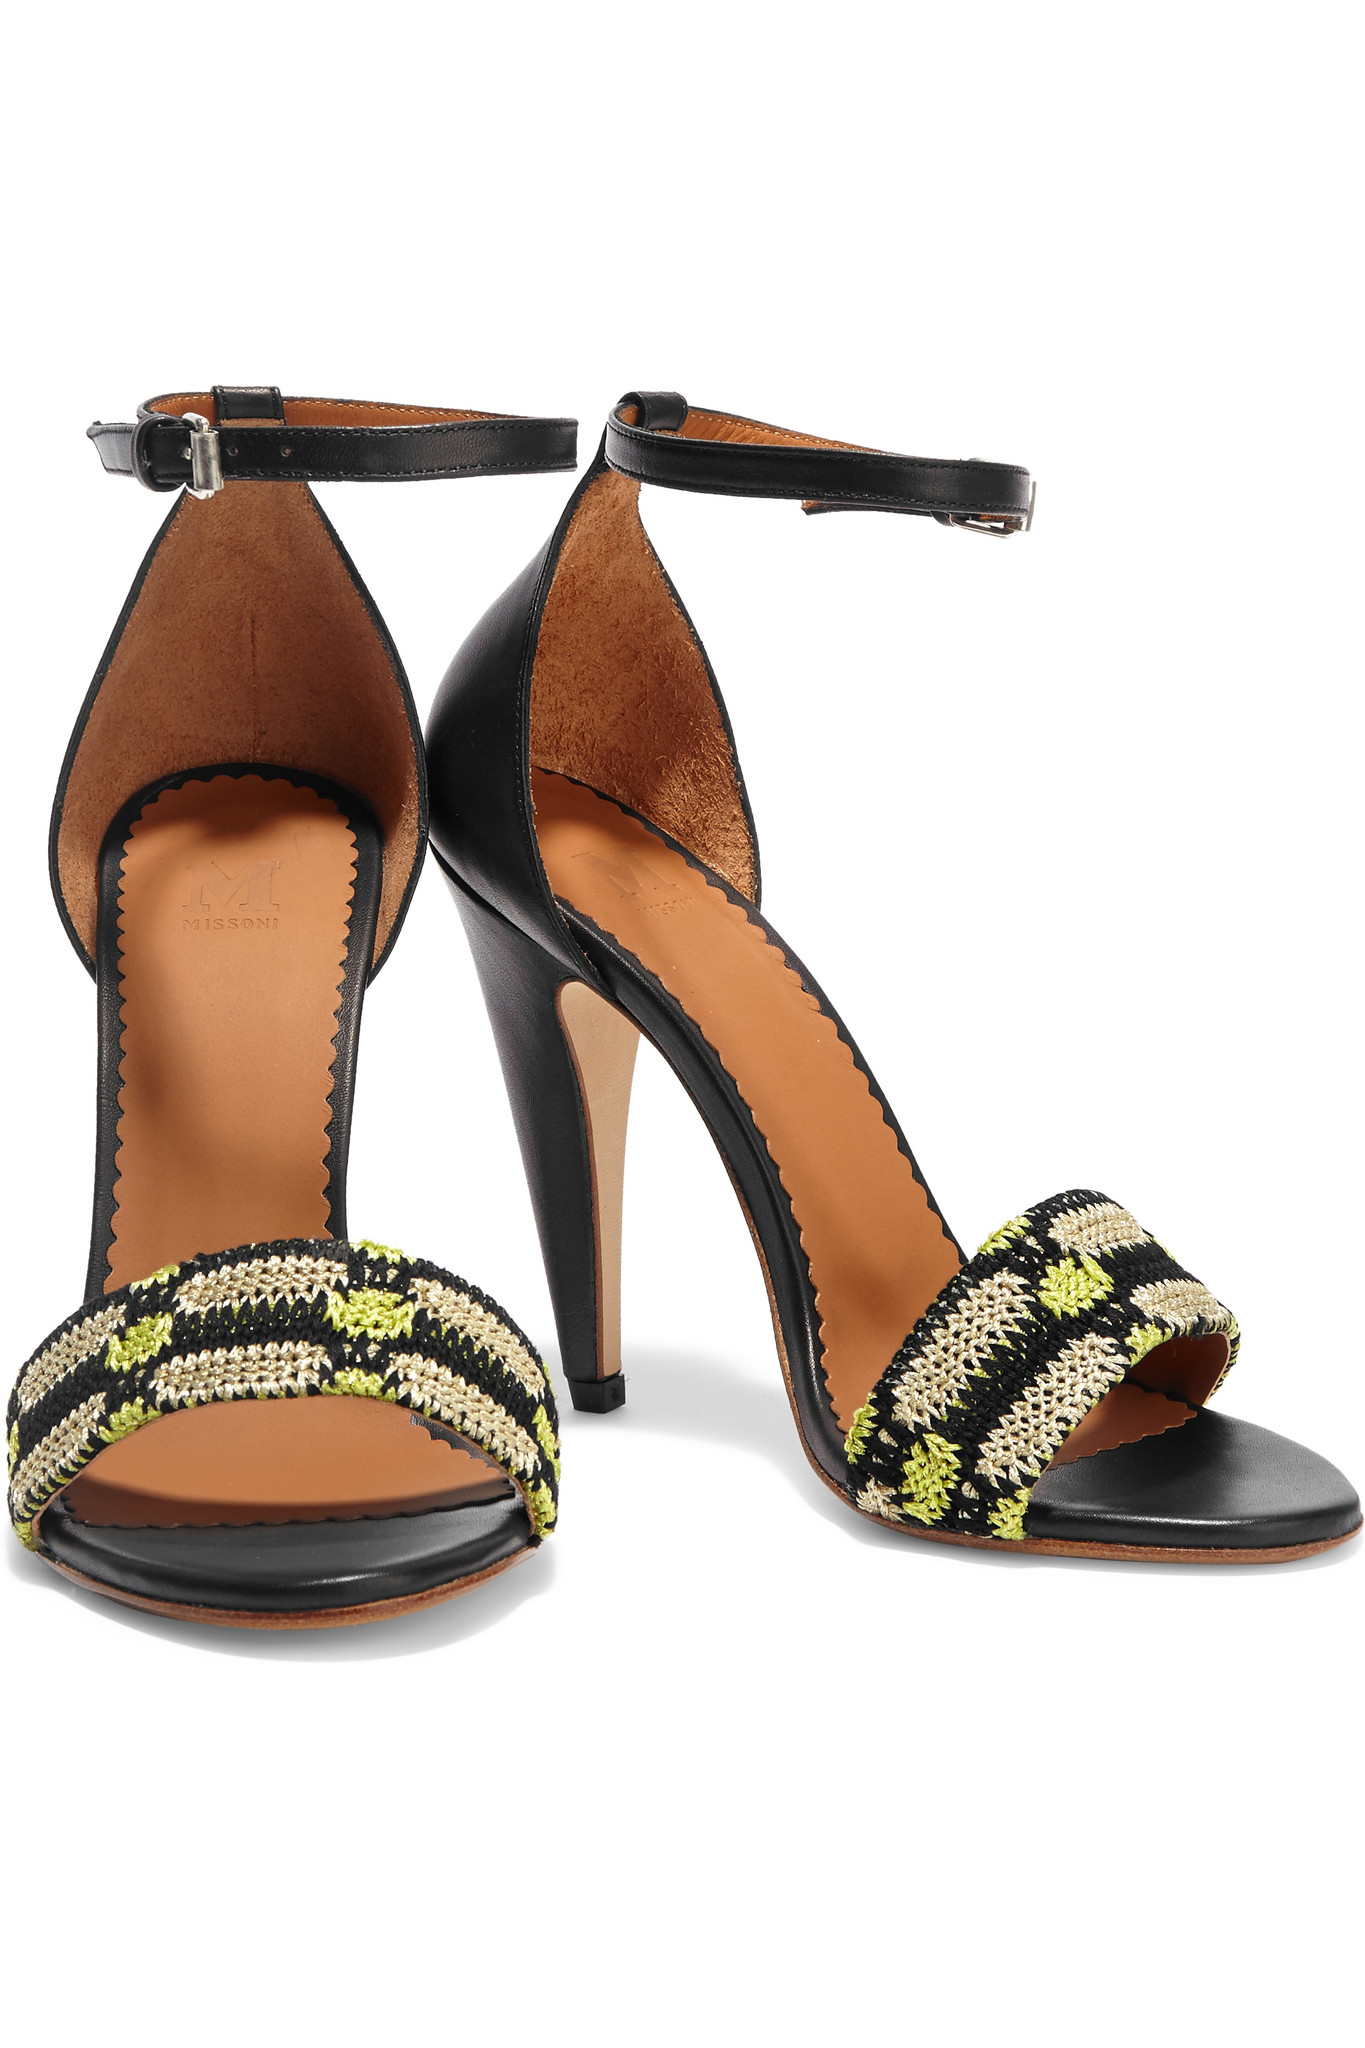 db54a8532ec M Missoni Crochet-knit And Leather Sandals in Black - Lyst